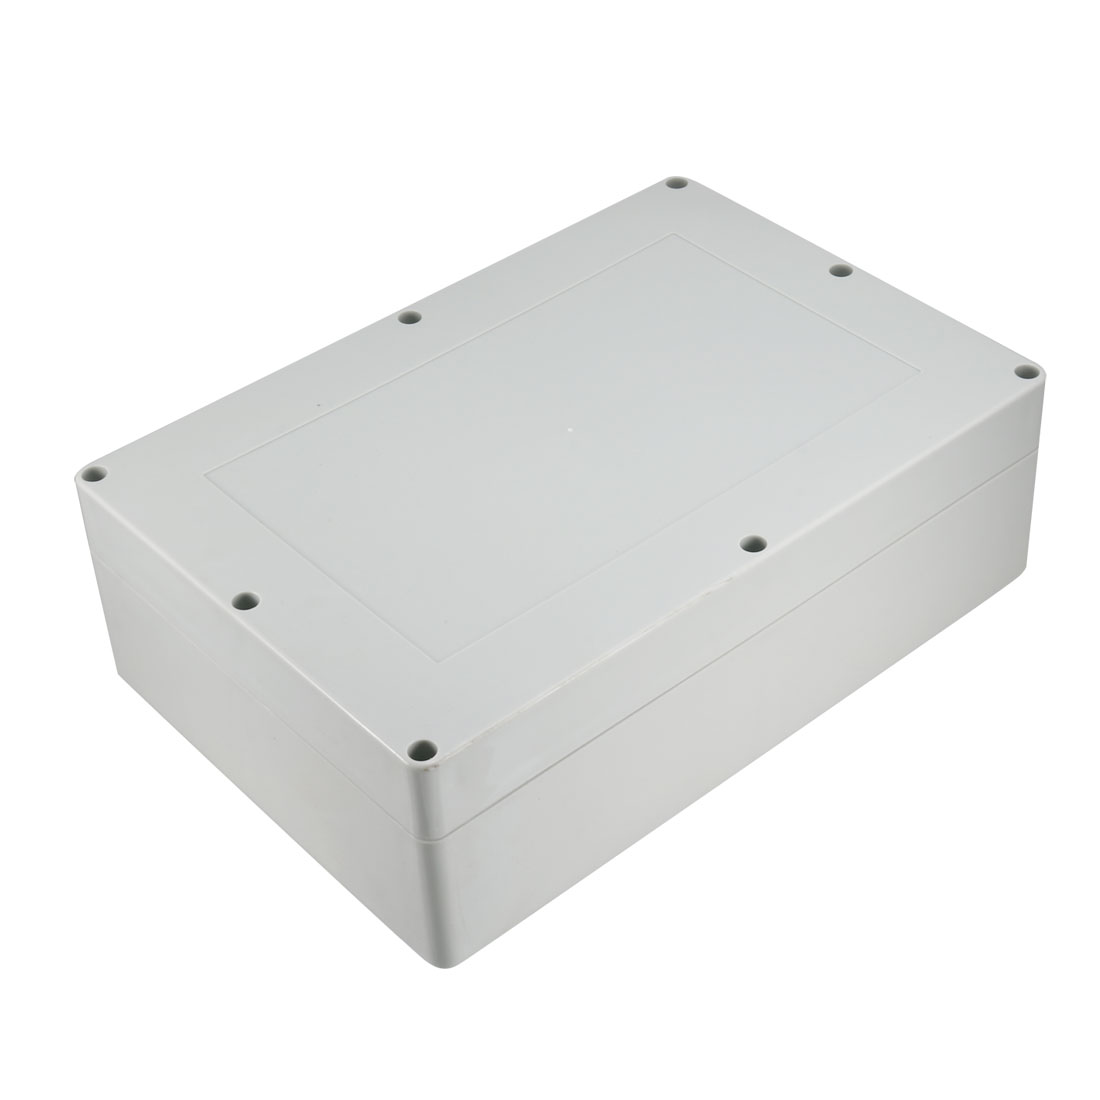 "15""x10.2""x4.72"" ABS Junction Box Universal Electric Project Enclosure"